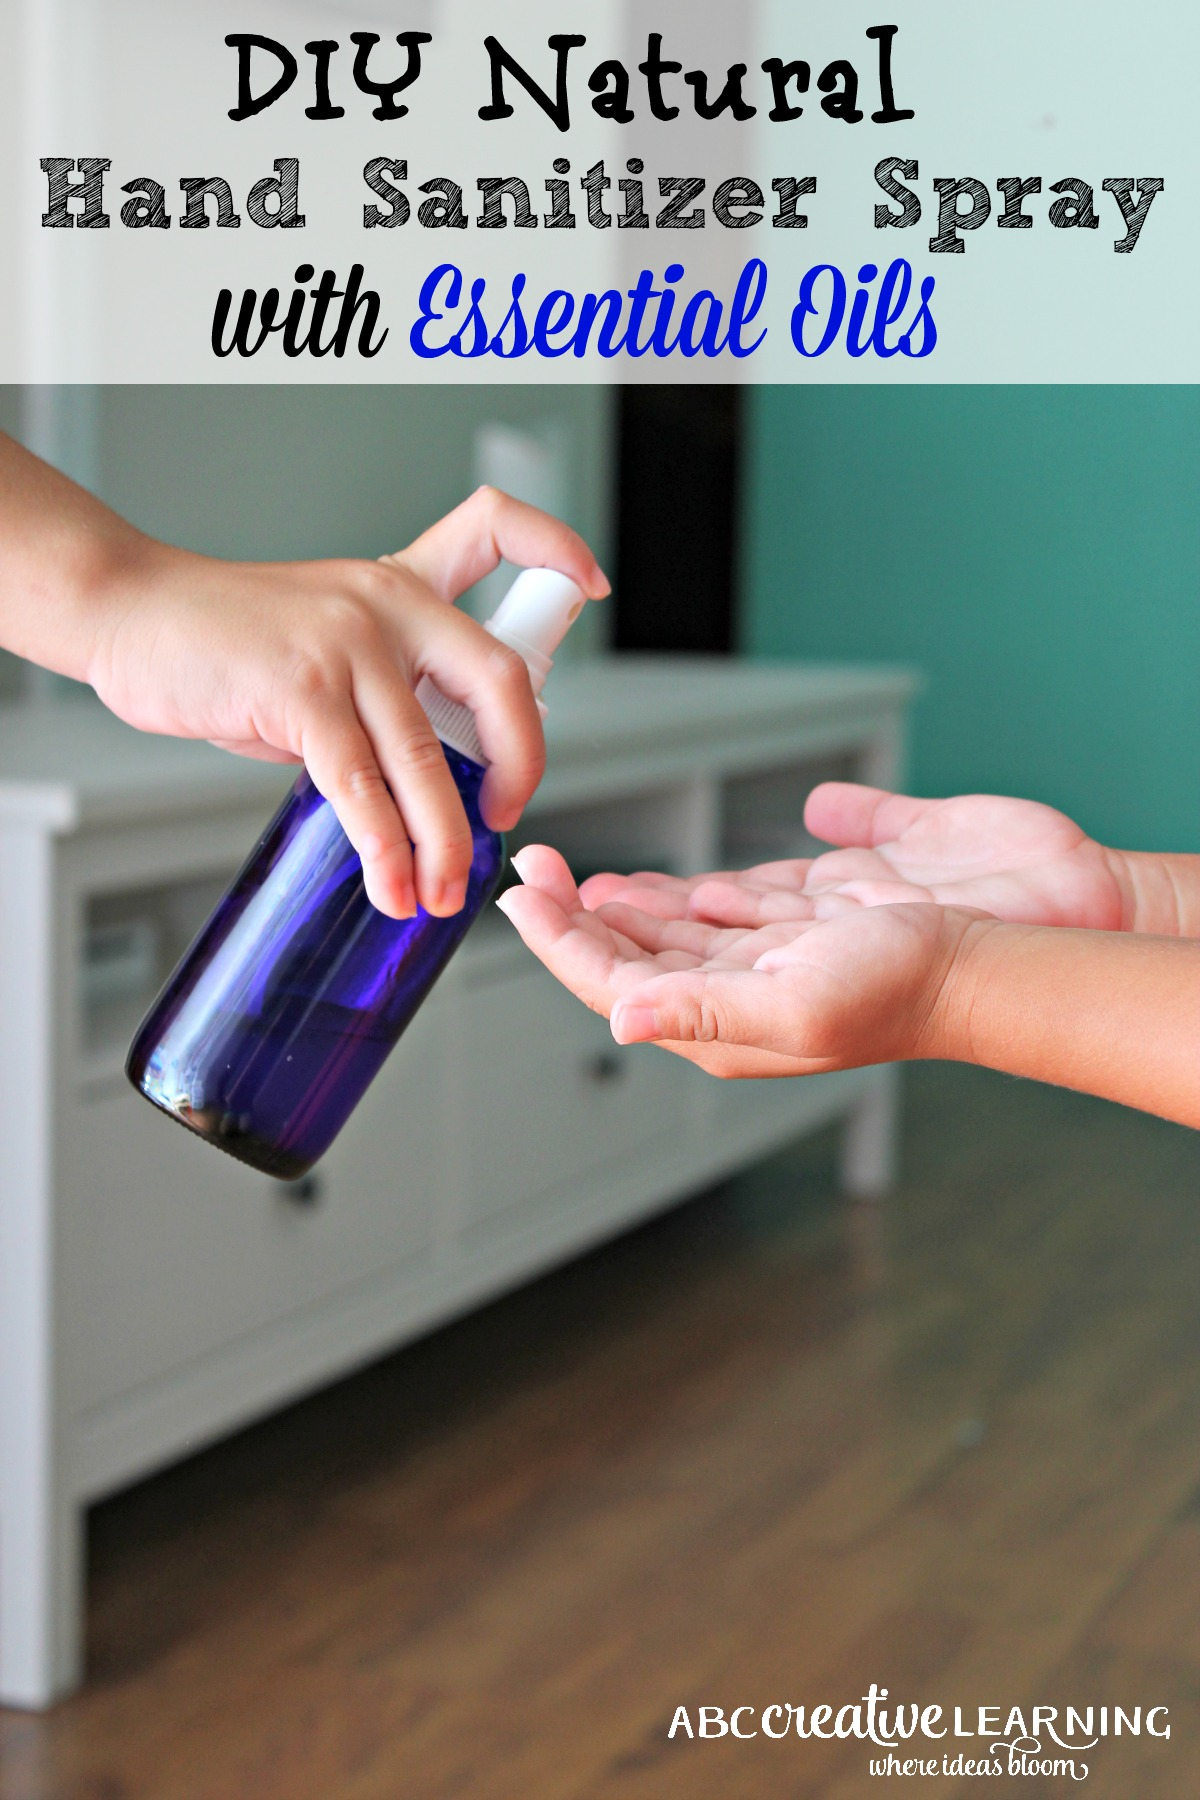 Diy Natural Hand Sanitizer Spray With Essential Oils